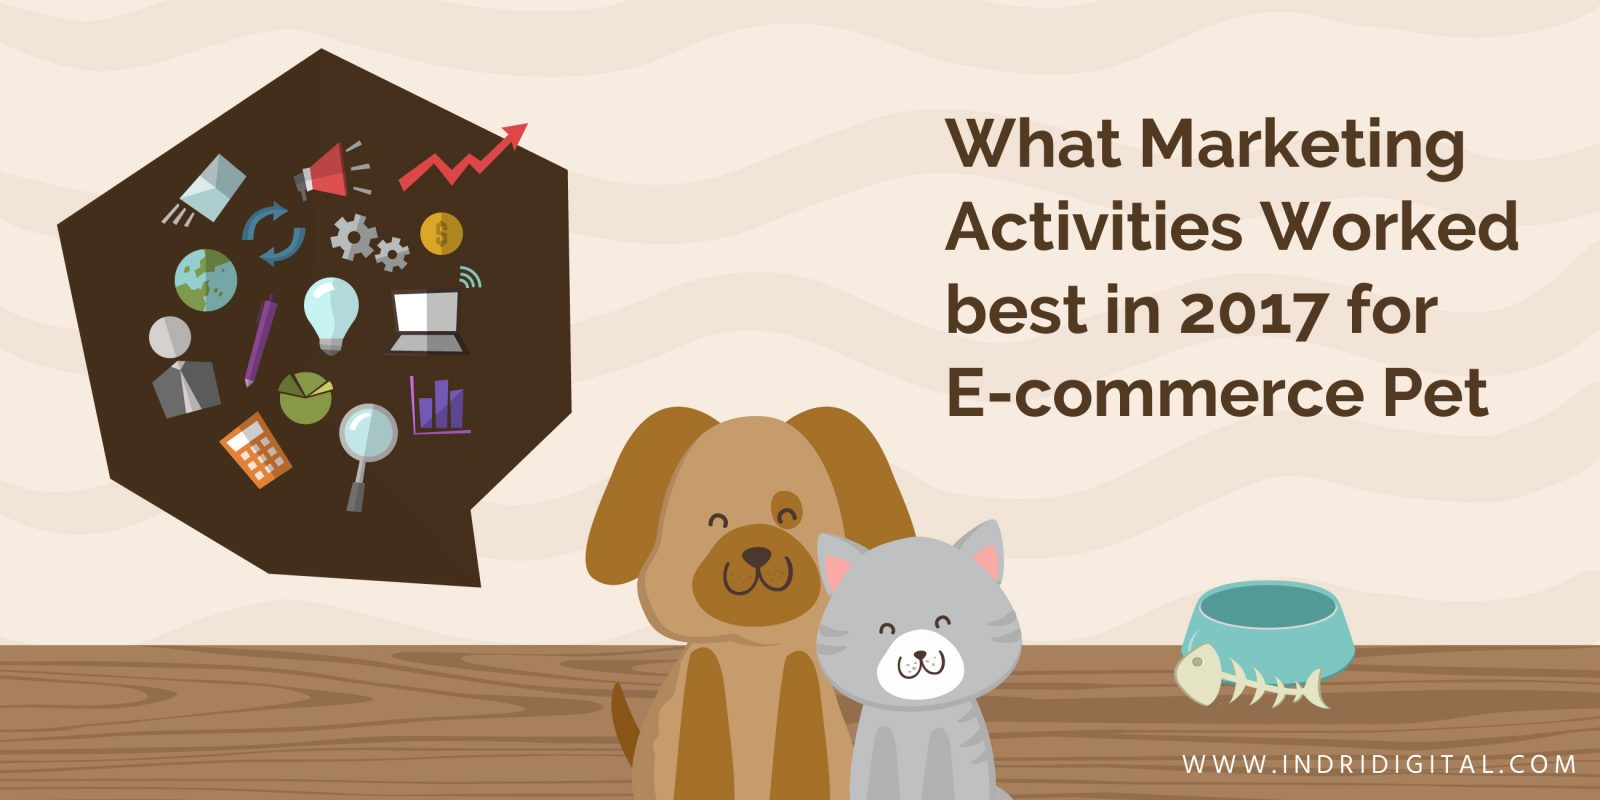 e-commerce pet brands